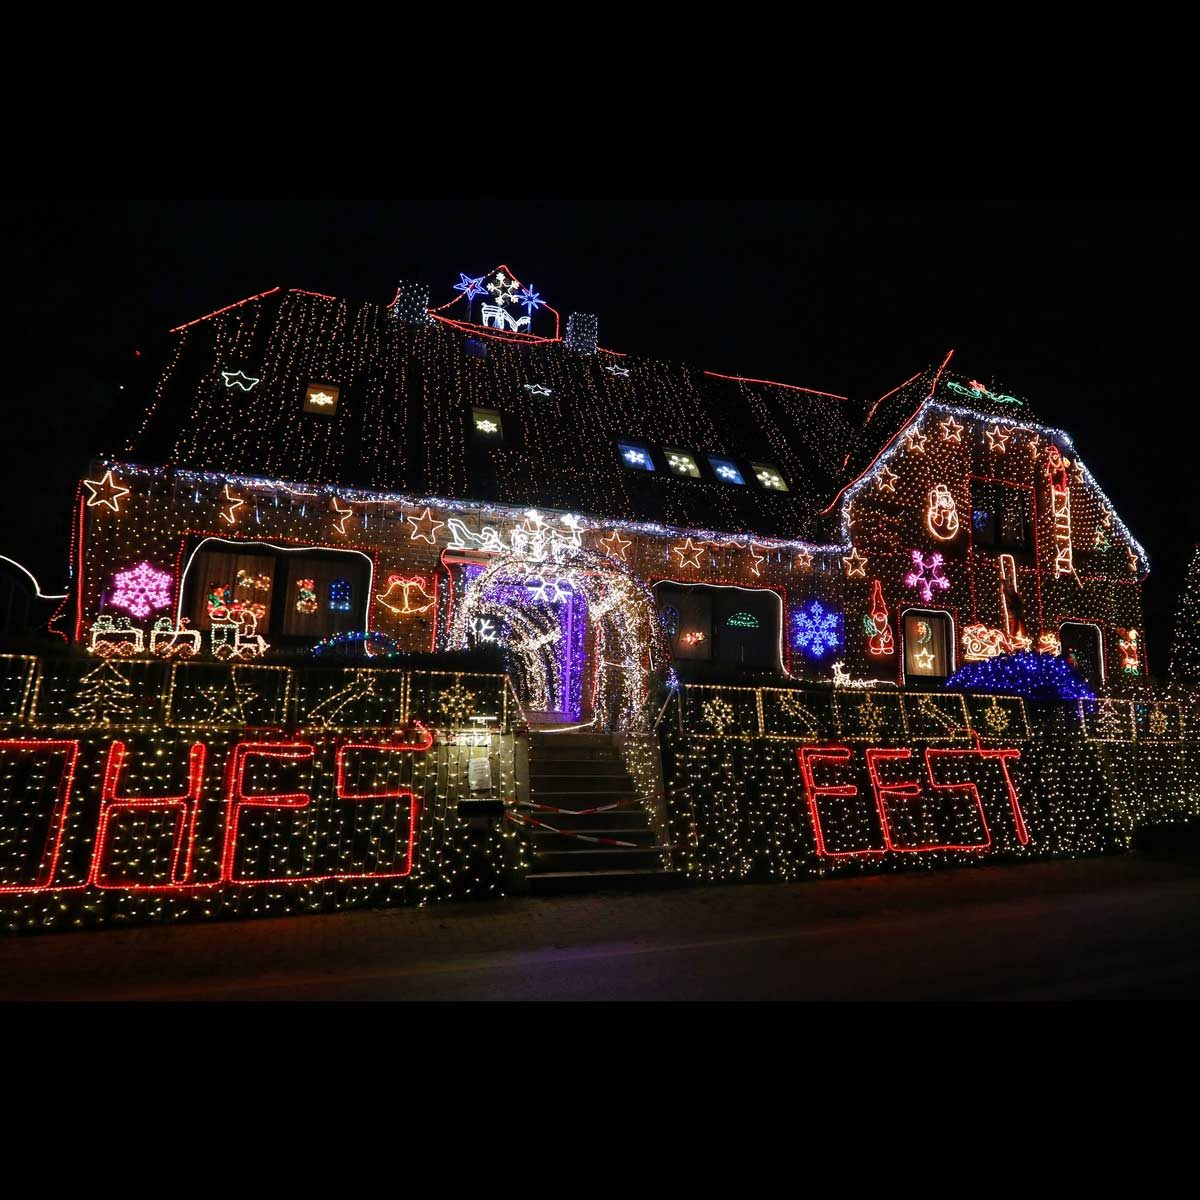 Crazy Christmas lights